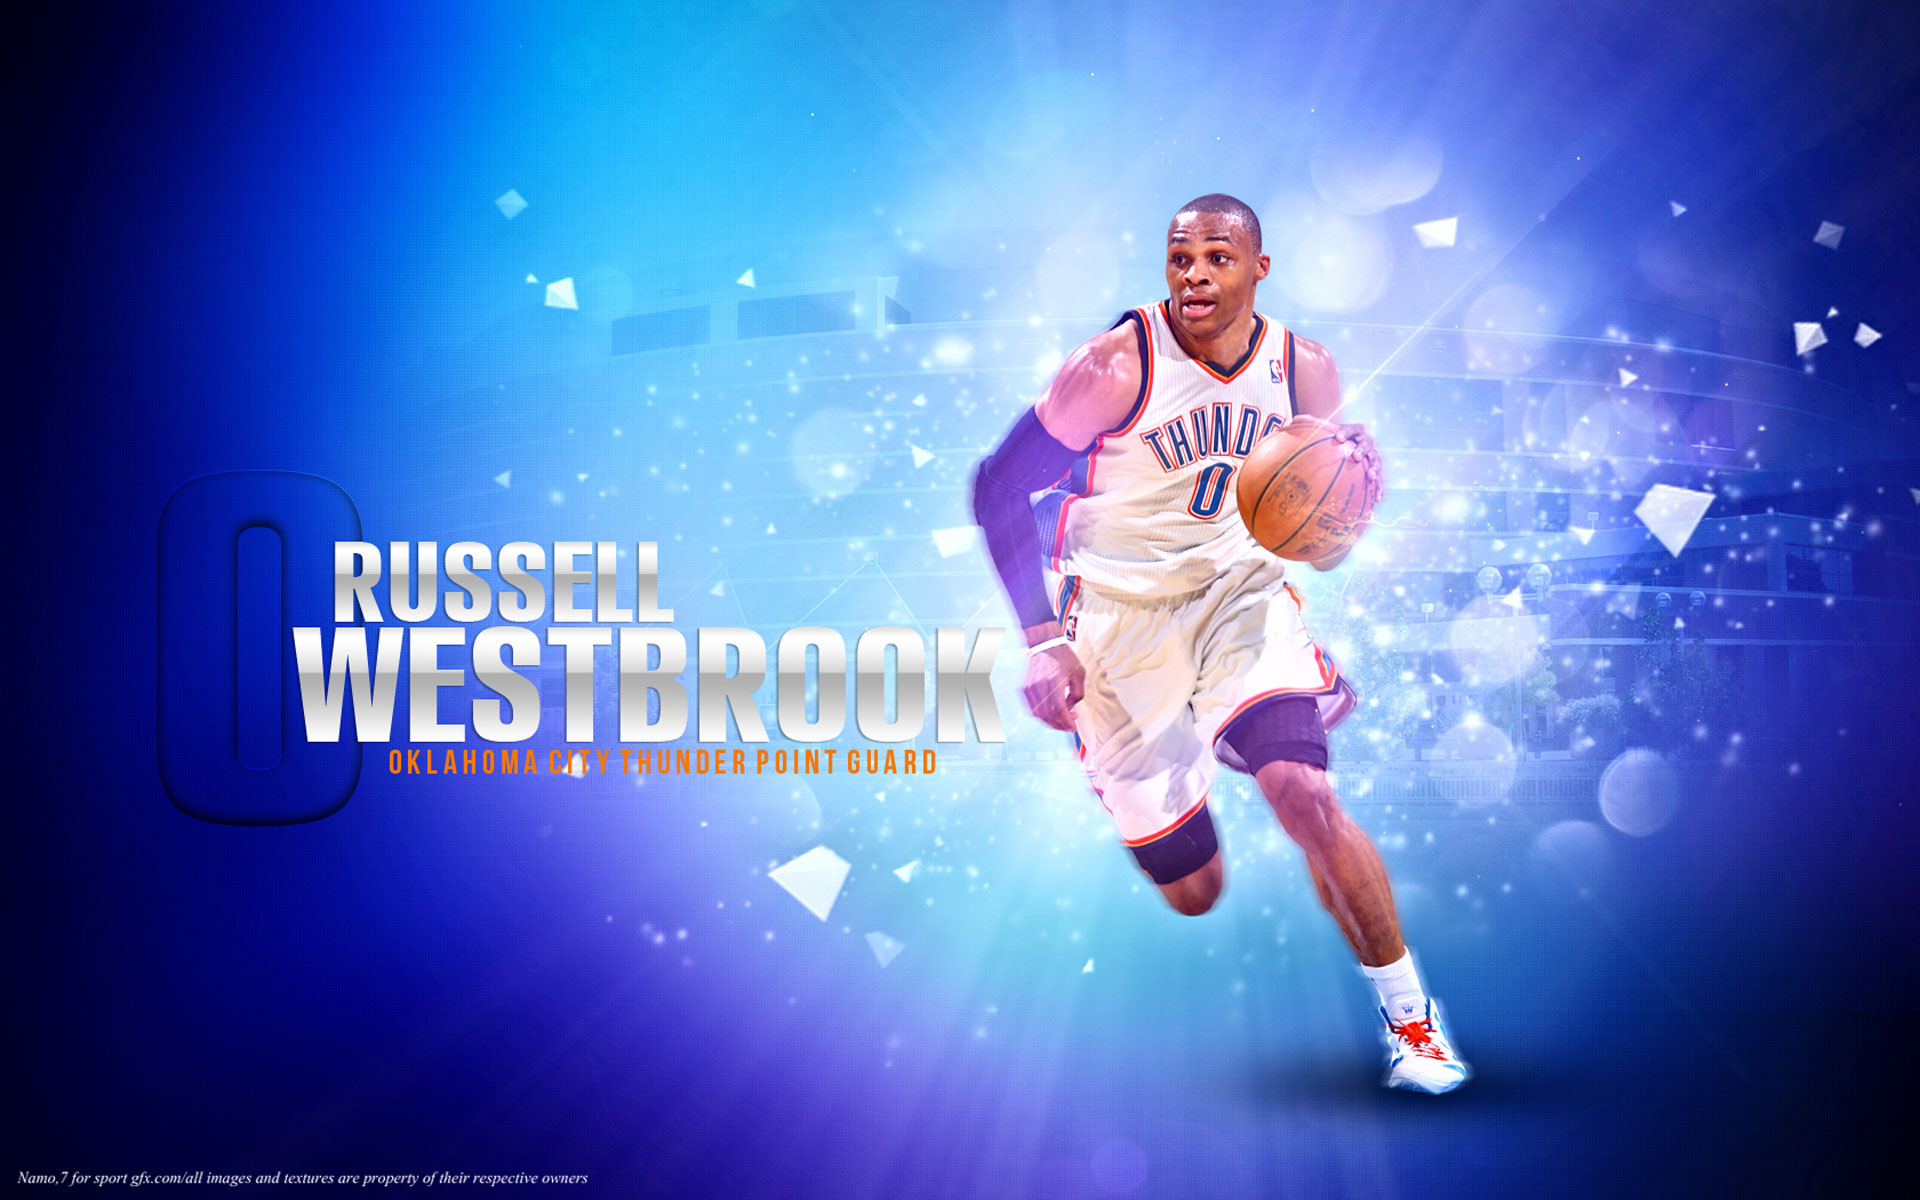 Russell westbrook wallpaper iphone wallpapersafari - Russell Westbrook Wallpaper Hd Wallpapersafari